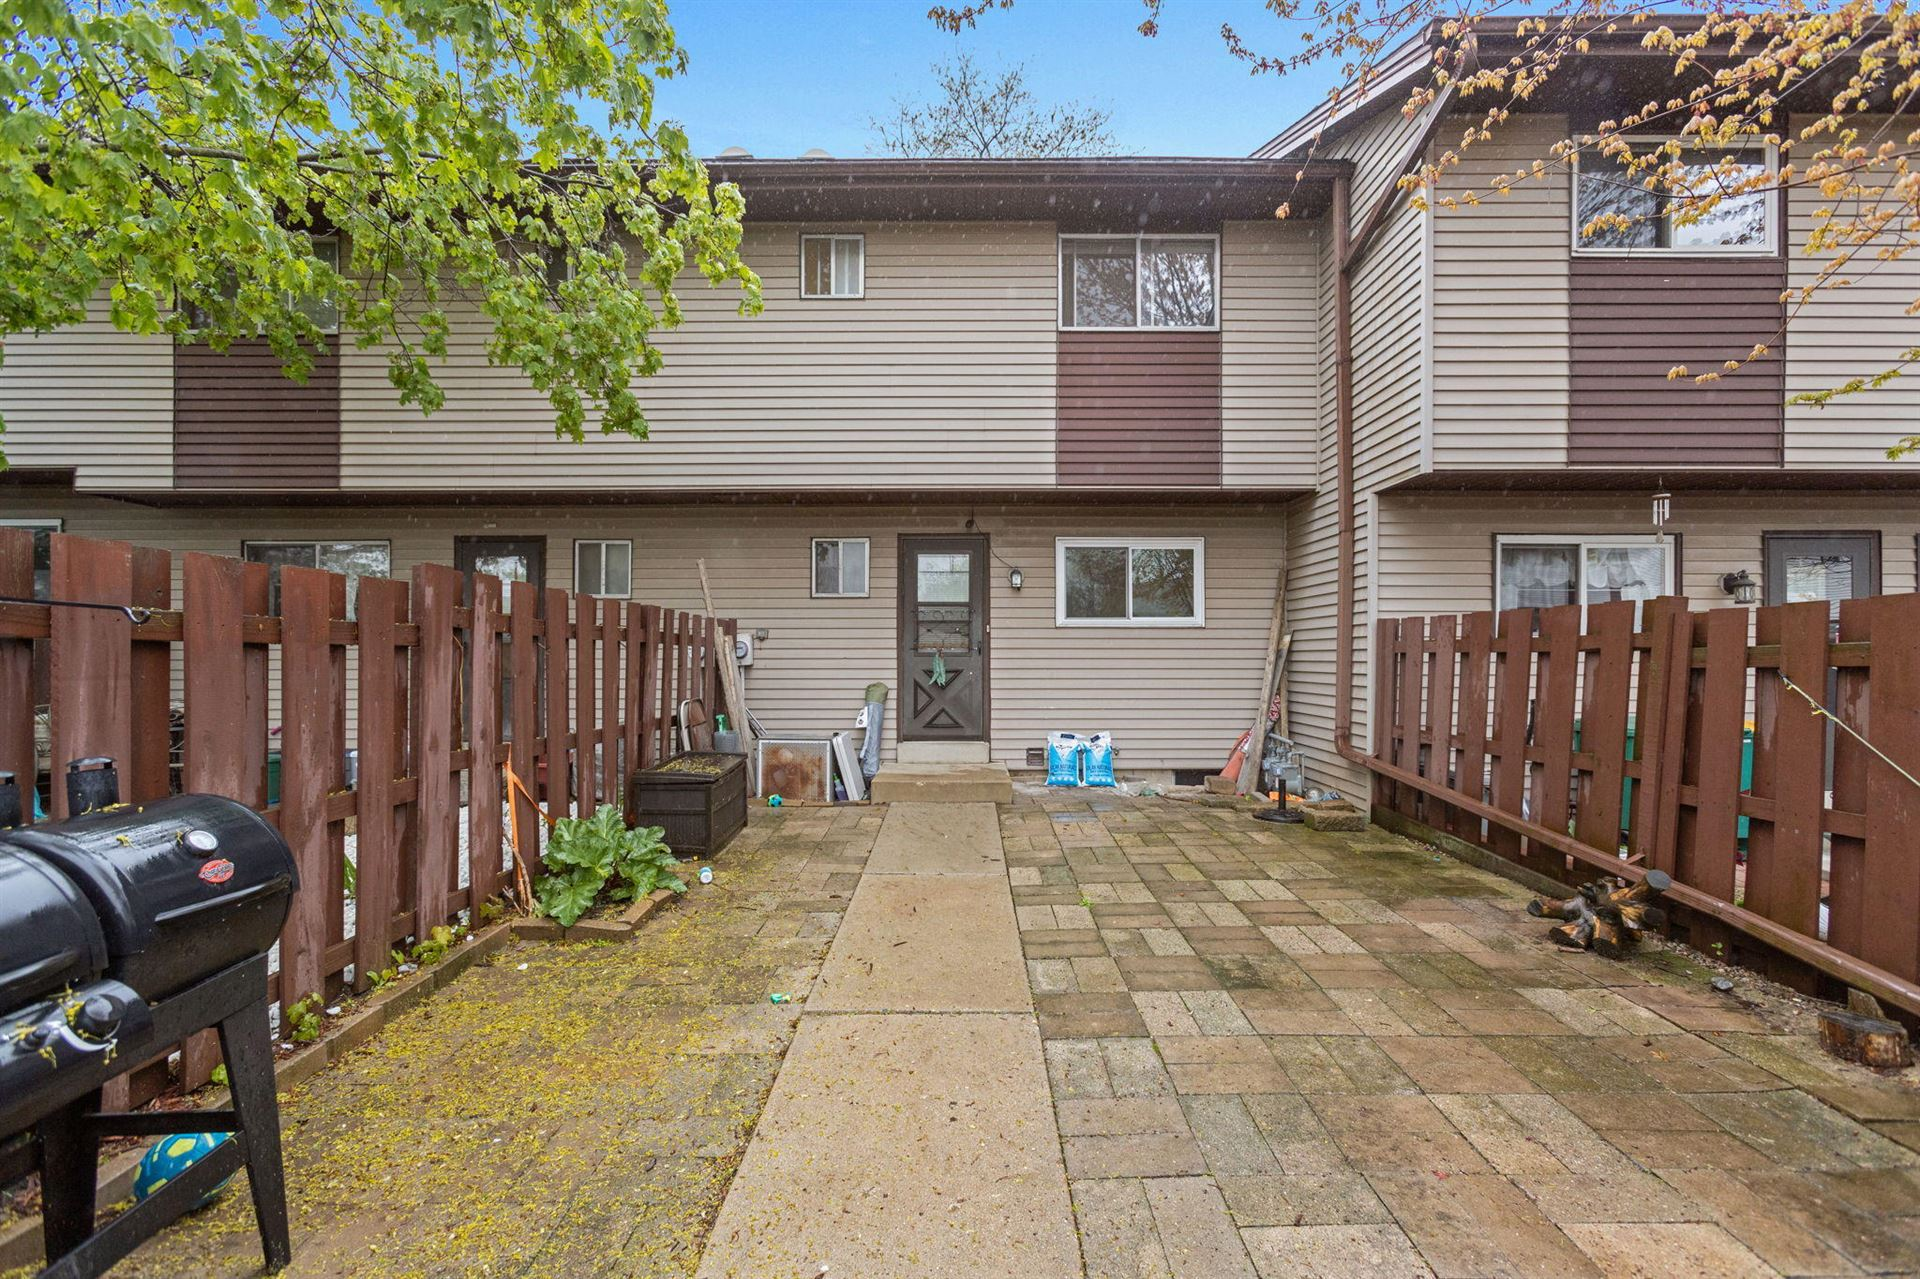 W166N11548 Westminster Ct, Germantown, WI 53022 - #: 1689657